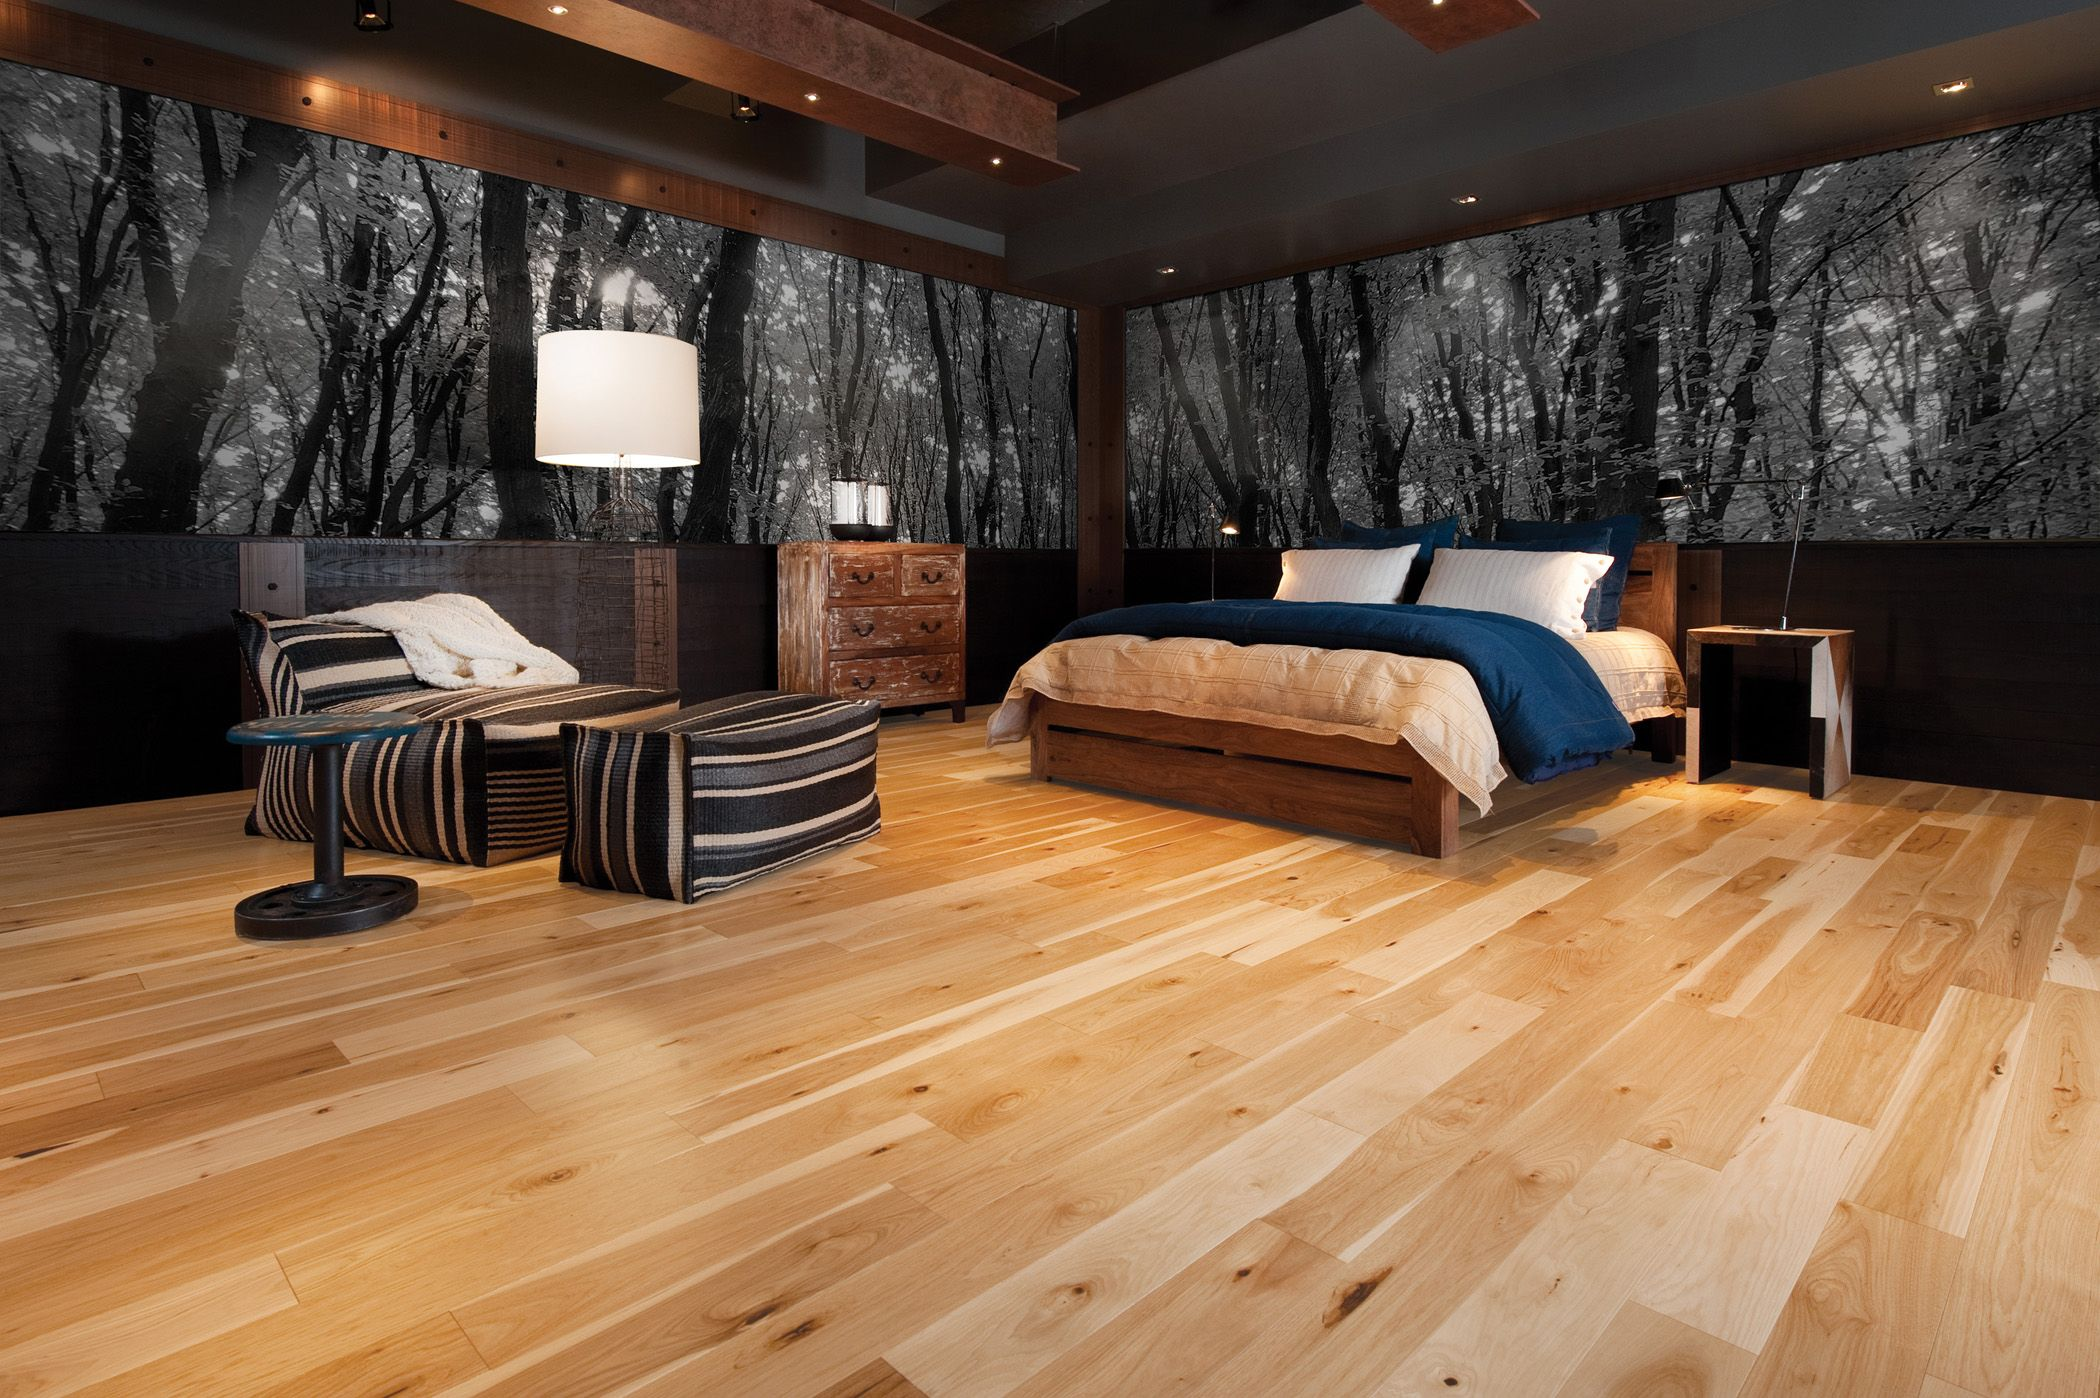 Wide Plank Hickory Floors Are A Stunning Backdrop To Any Style Decor These Floors Are Finishes Natur Wood Bedroom Design Floor Design Hardwood Bedroom Floors